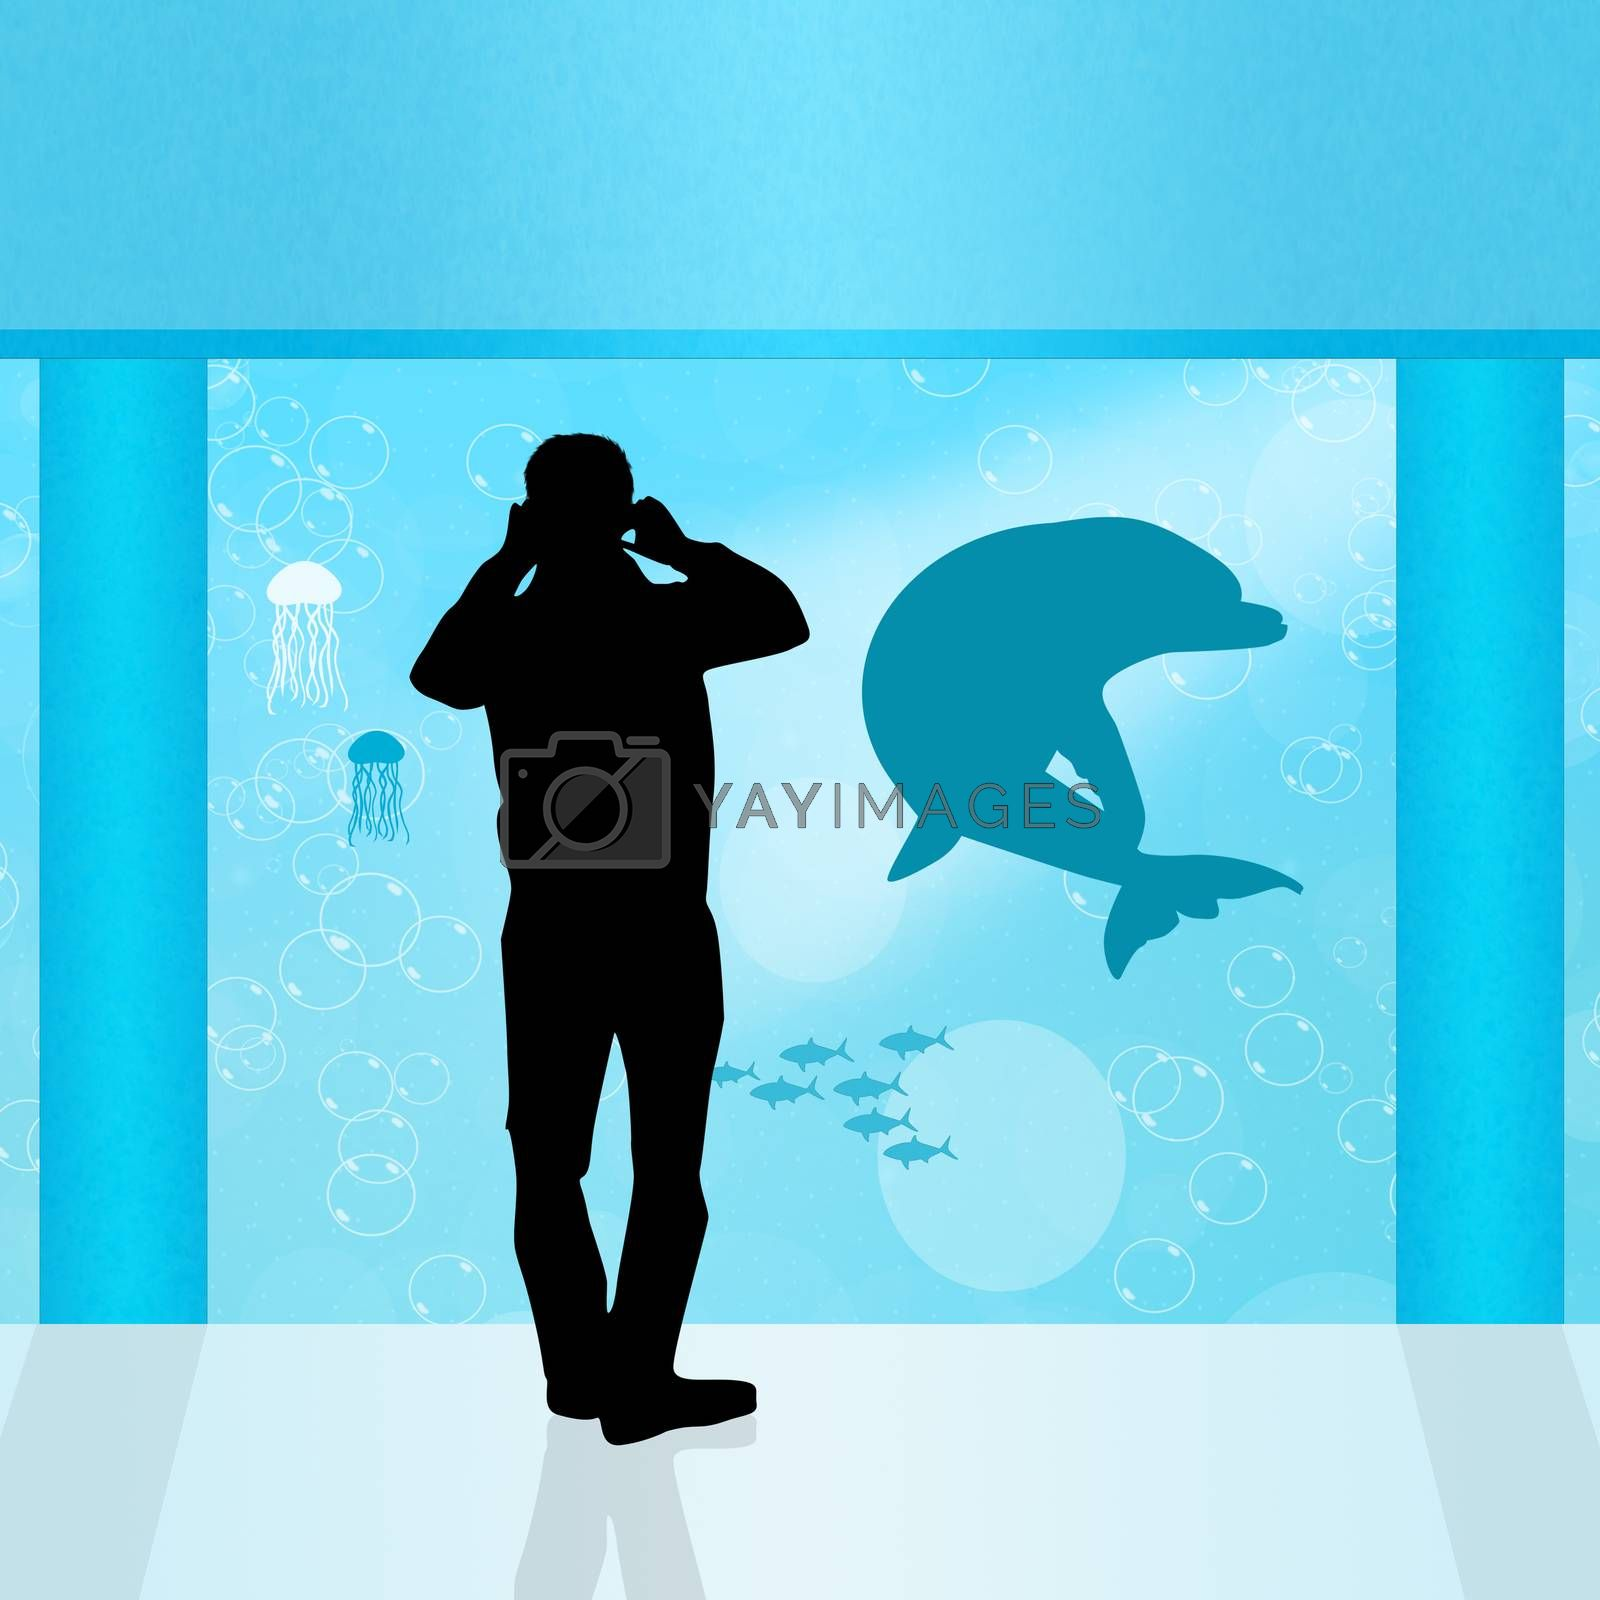 people in the aquarium by adrenalina